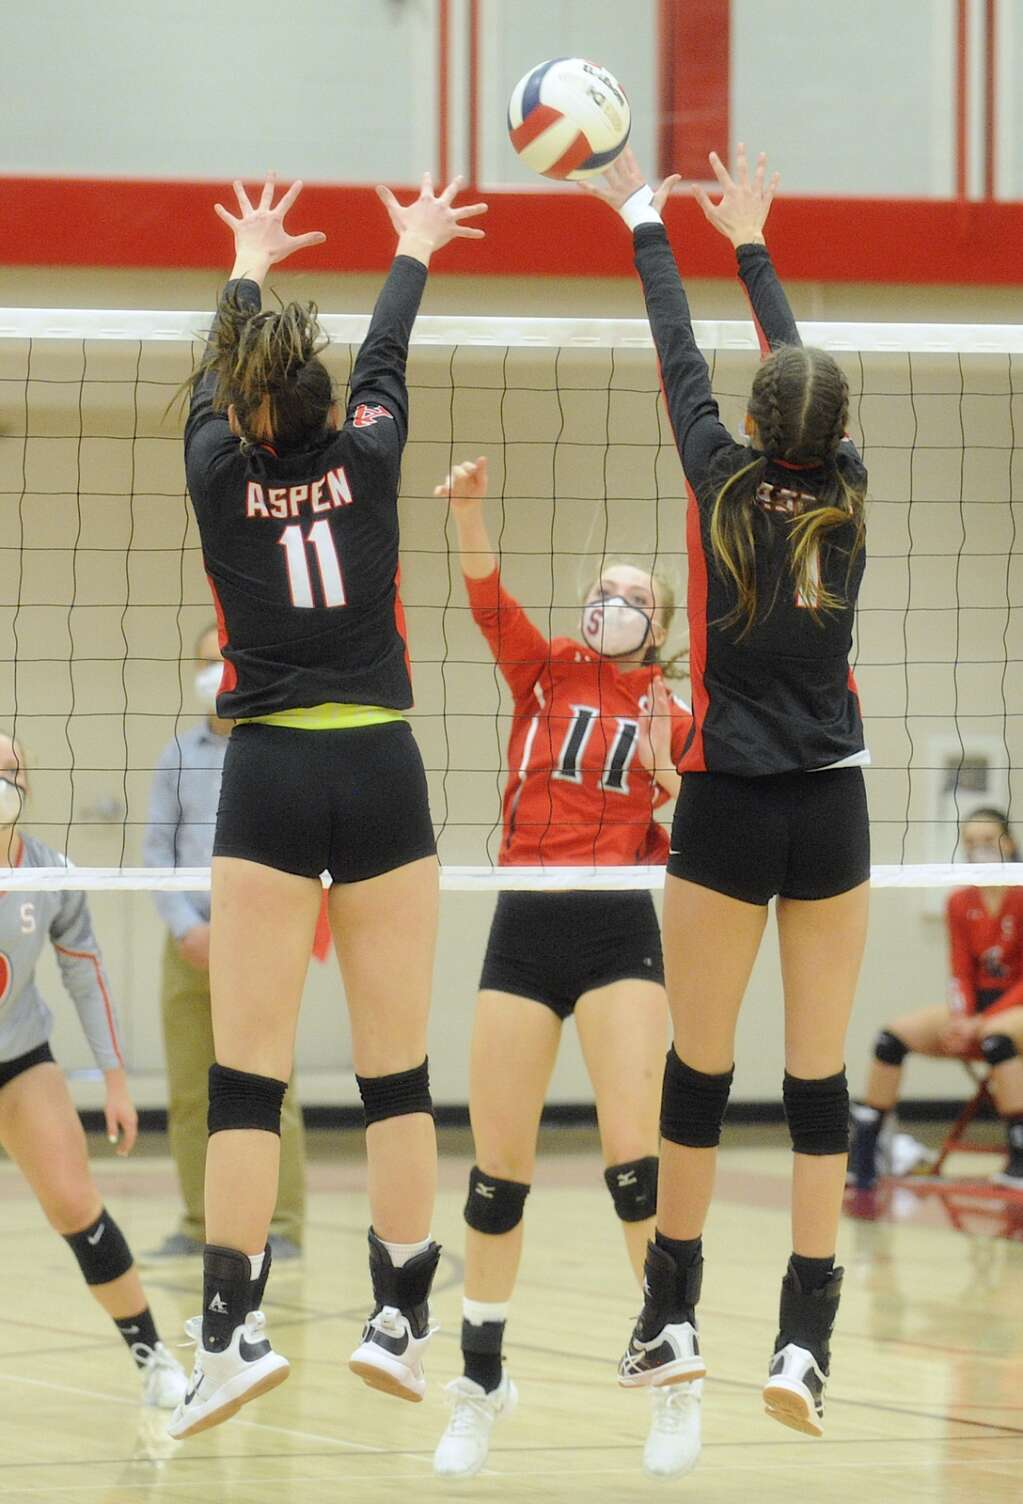 Steamboat Springs player Sophie Diehl sneaks the ball between a block by Aspen's Bella Haneman, left, and Sadie Bayko during a game on Thursday night. (Photo by Shelby Reardon)